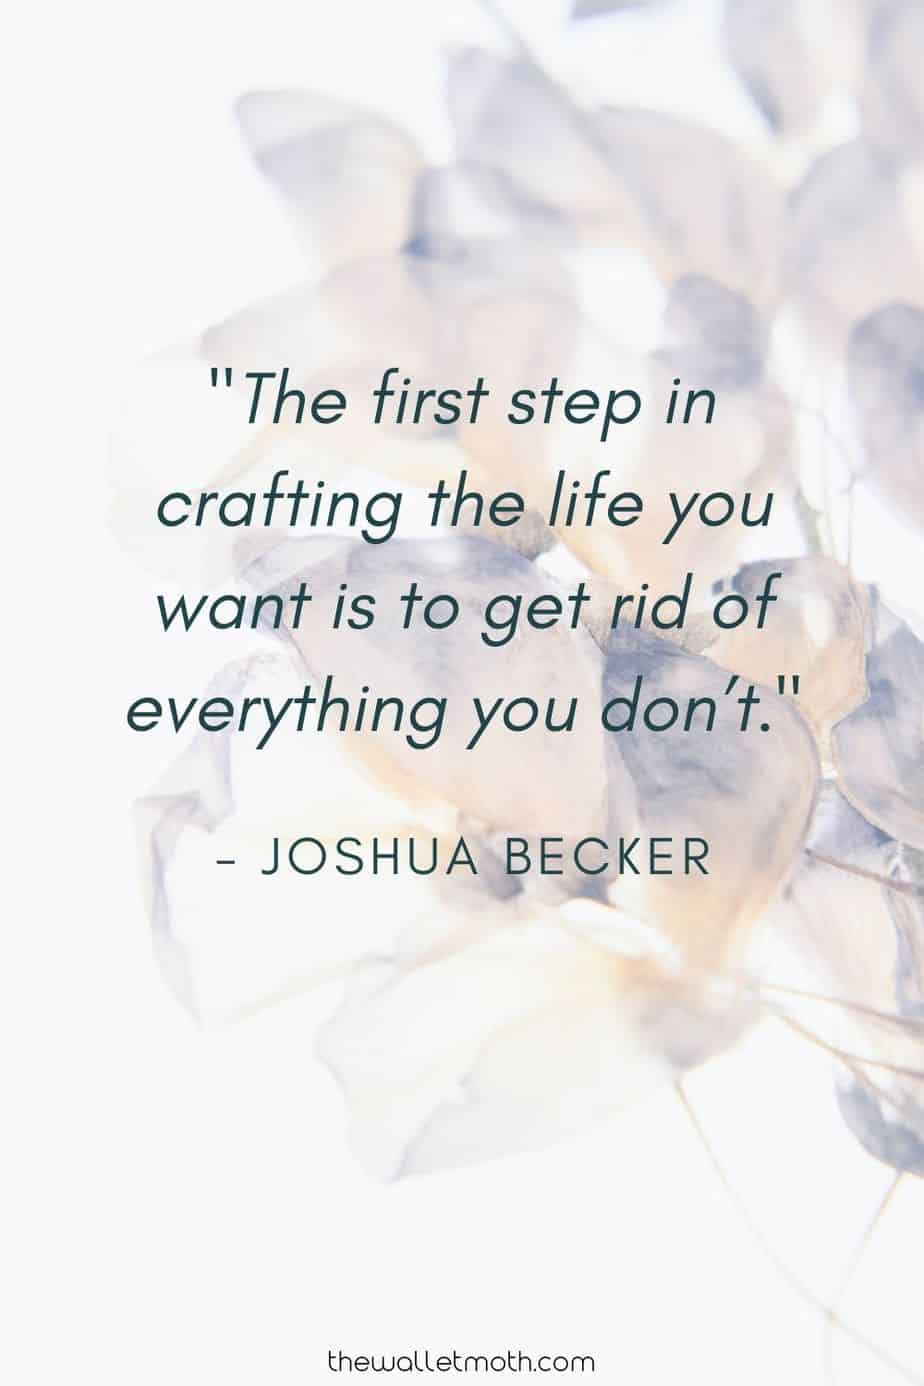 """The first step in crafting the life you want is to get rid of everything you don't."" - Joshua Becker"